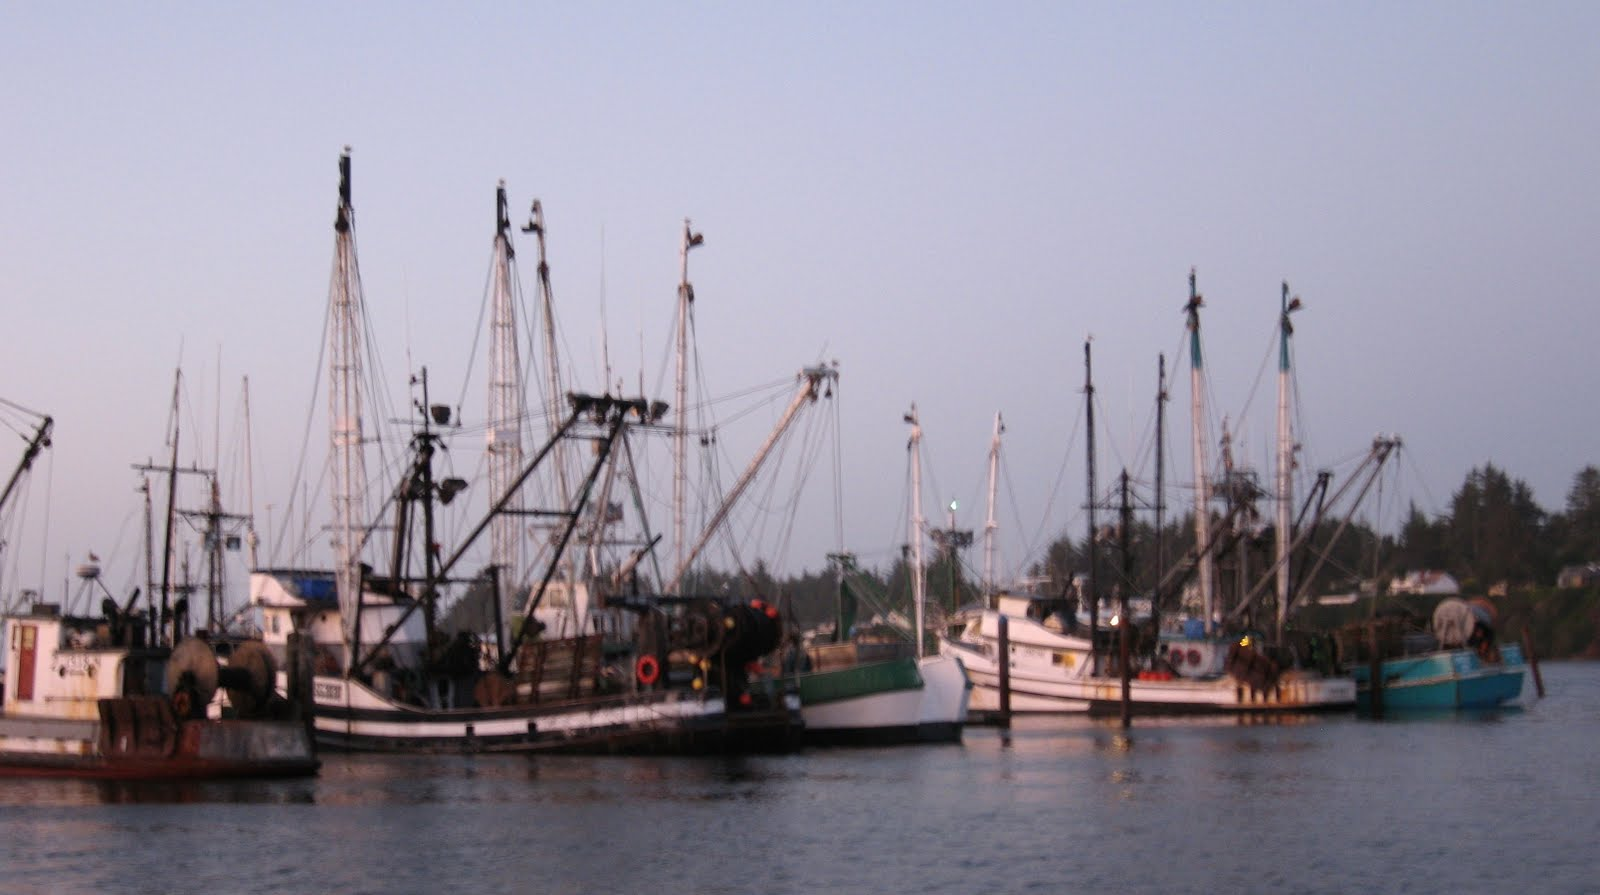 The adventures of ka 39 sala neah bay to coos bay august 15 for Coos bay fishing